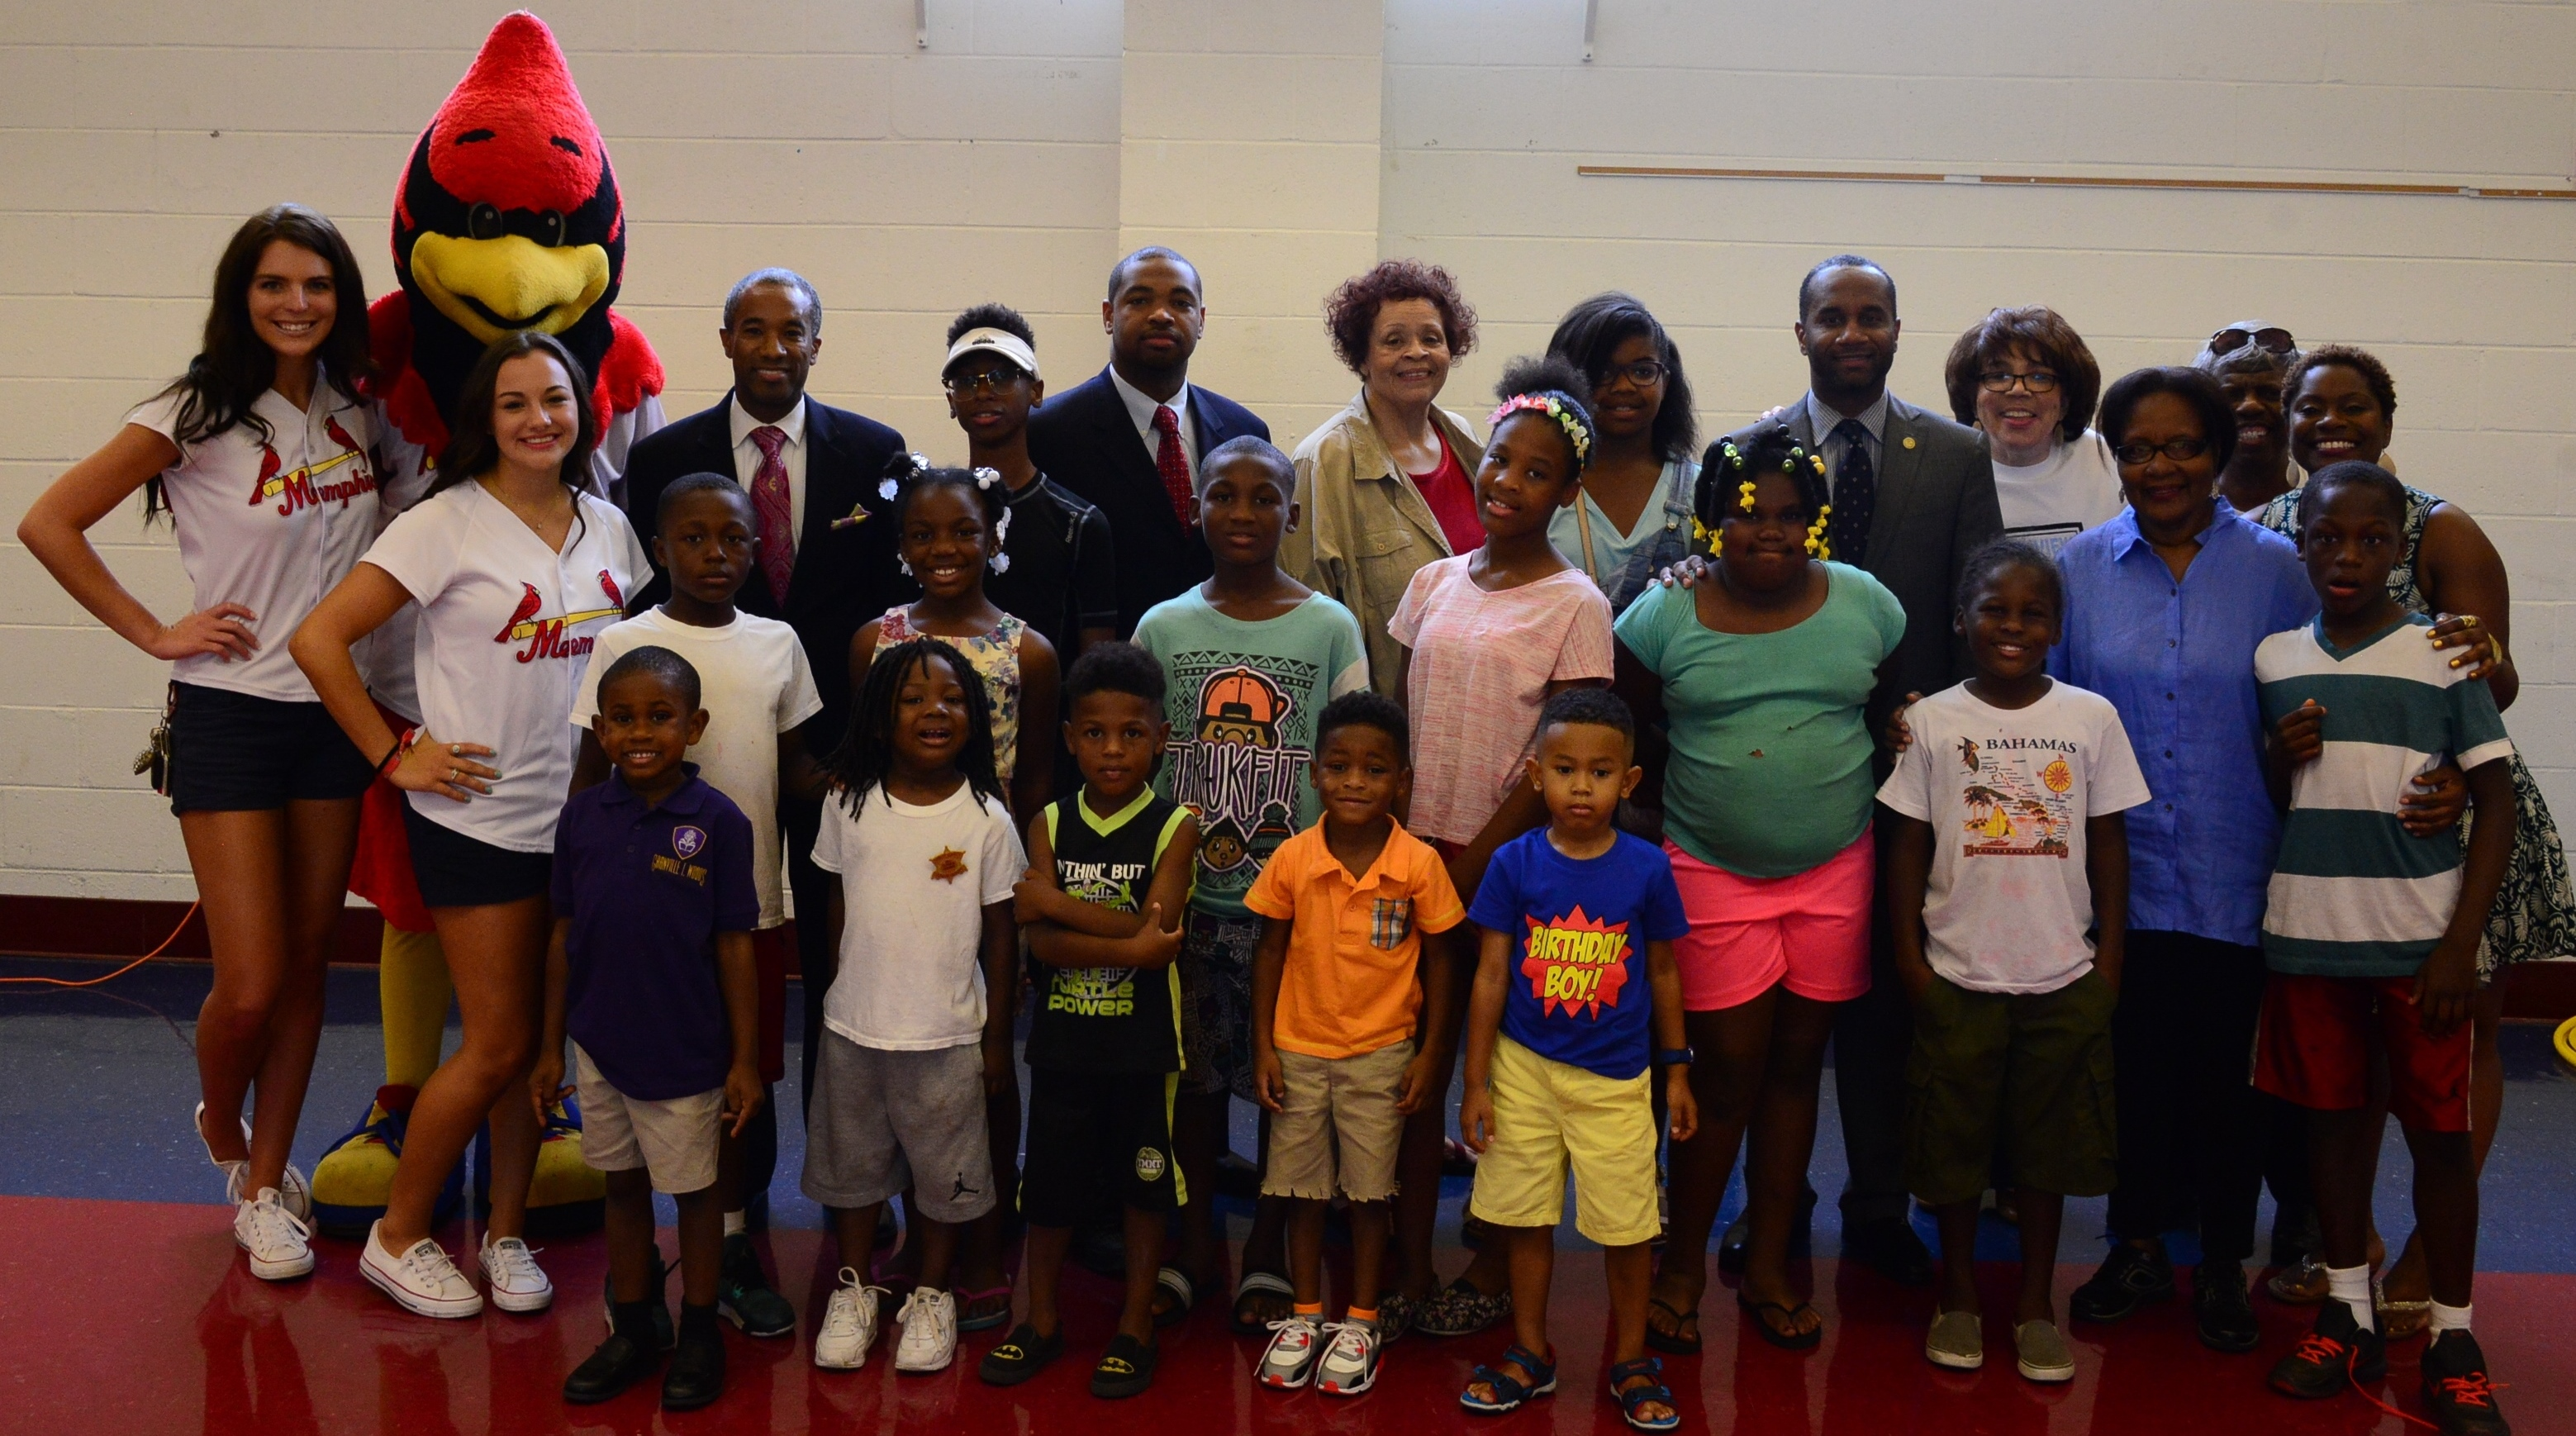 Members of the U.S. Attorney's Office pose with kids and adults of the Glenview community during National Night Out 2016.